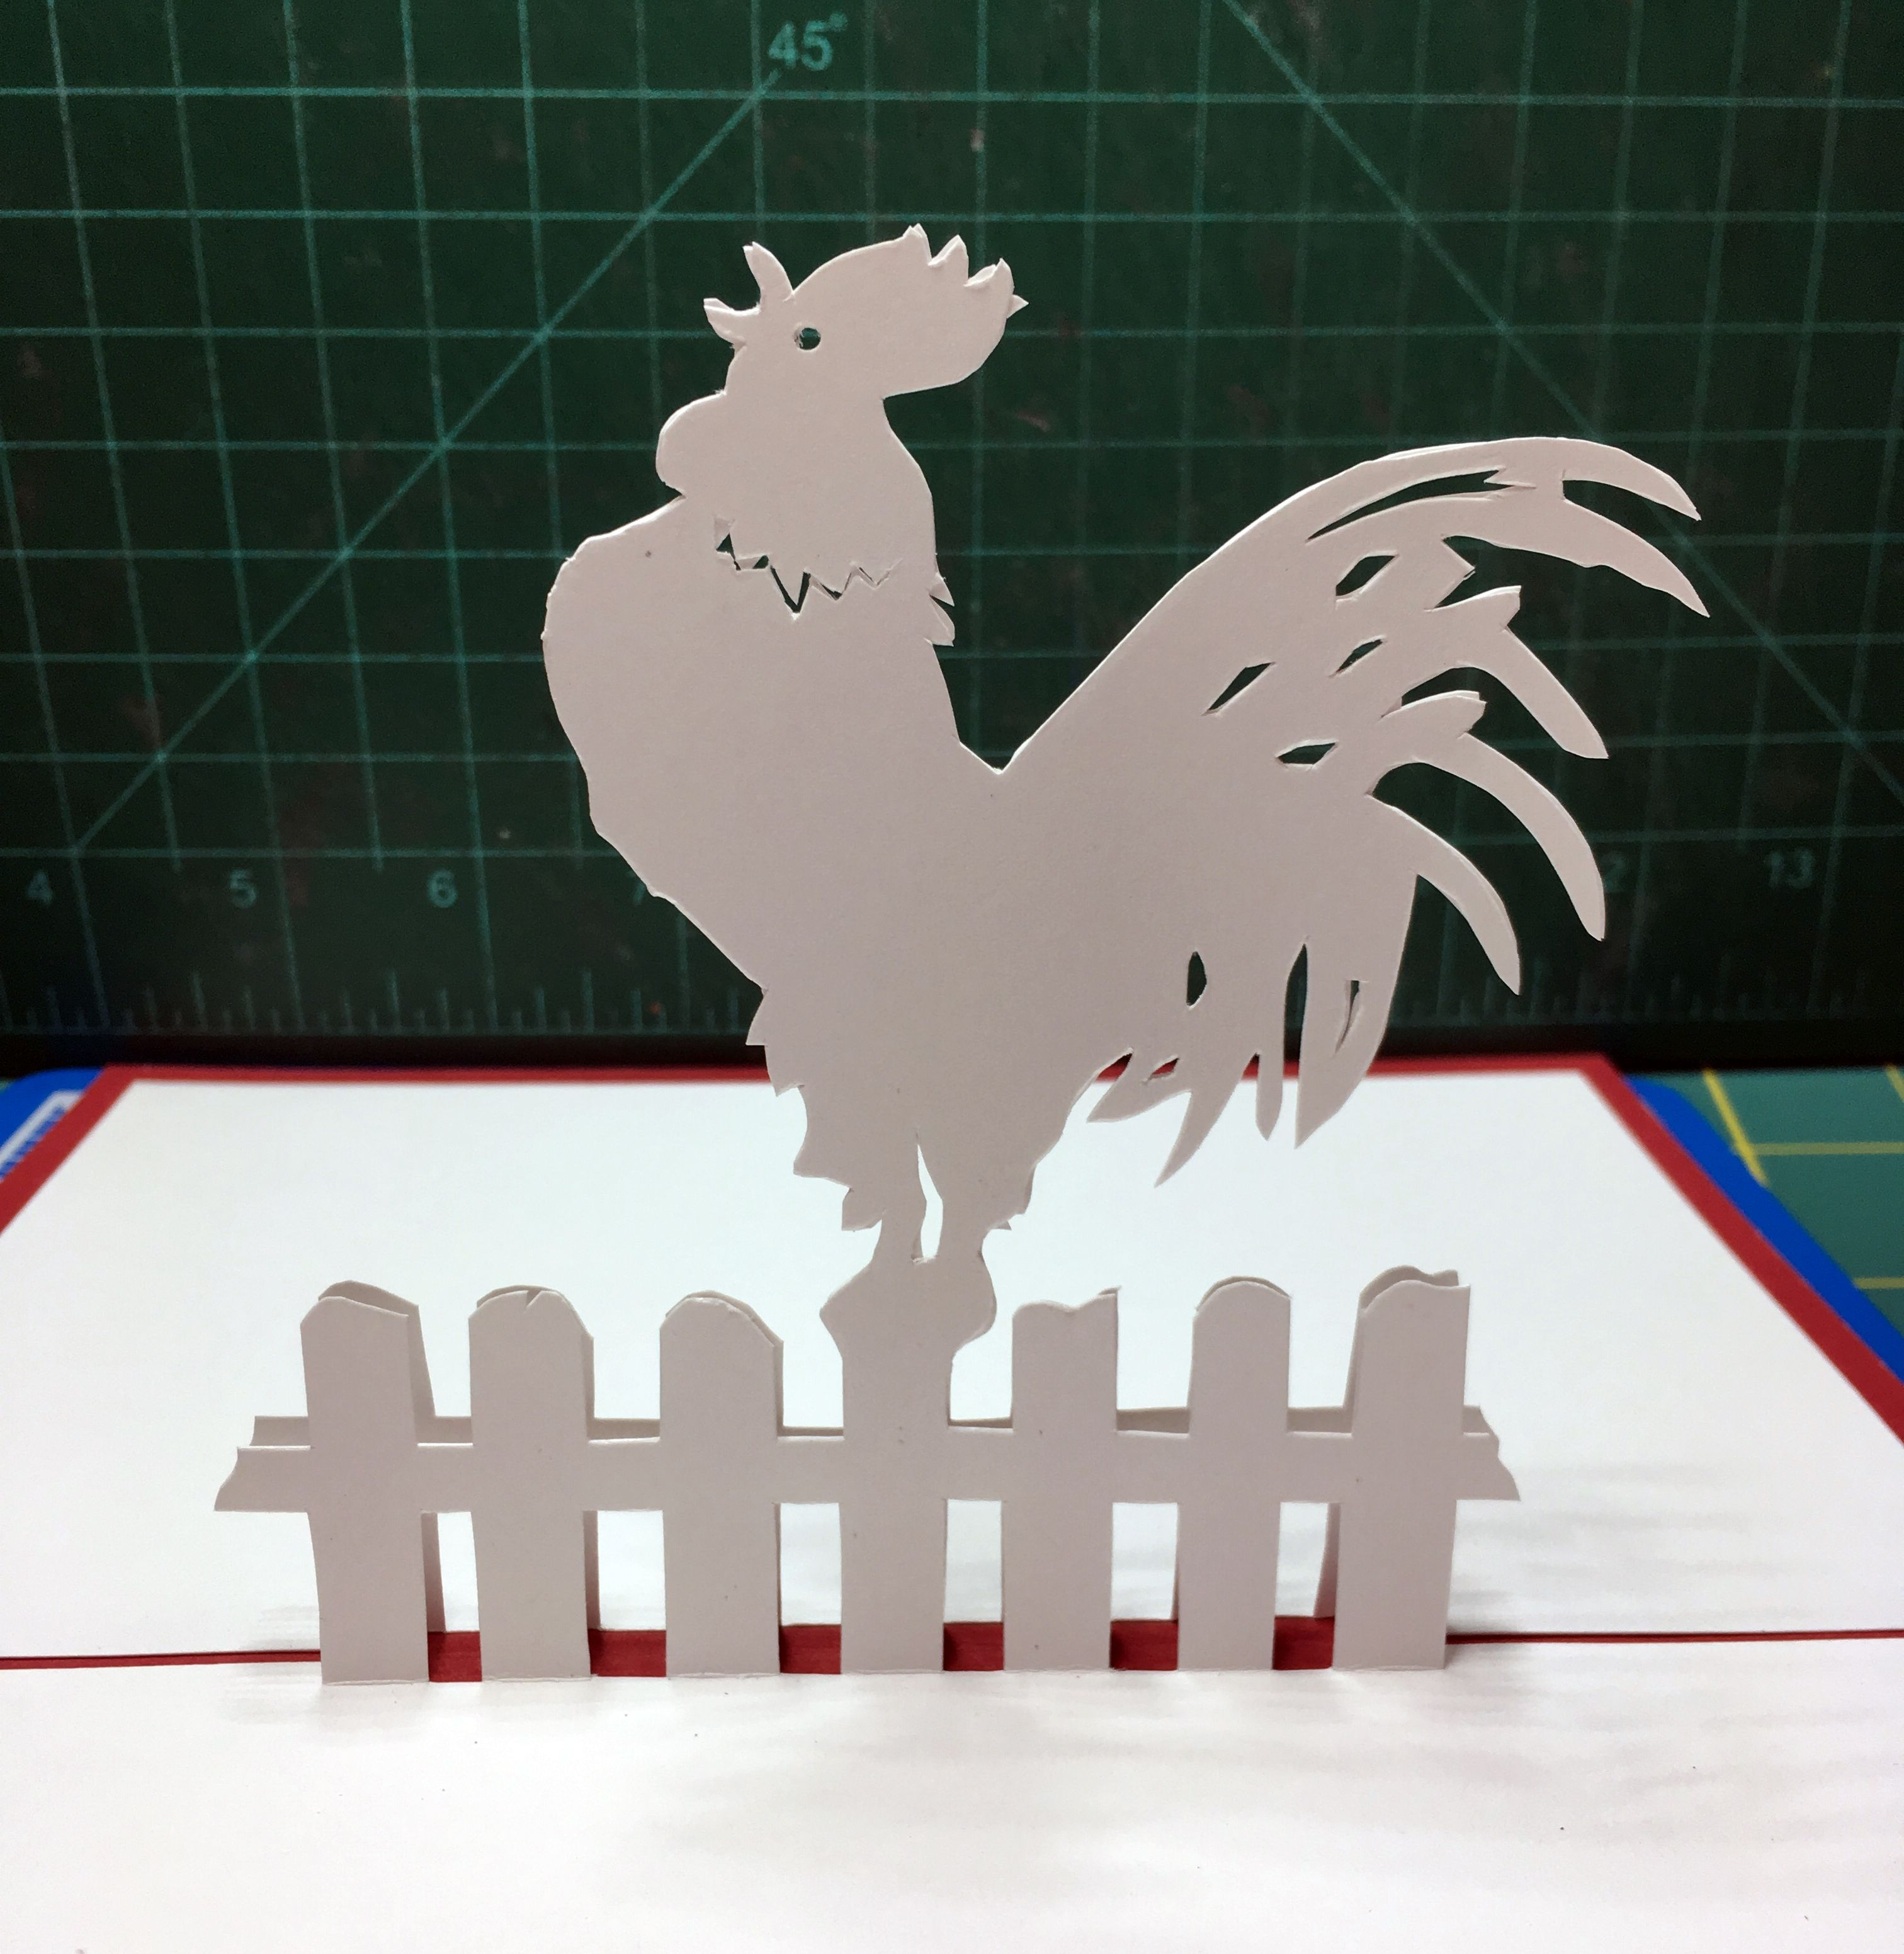 Rooster pop up card template from cahier de kirigami 8 for Kirigami christmas card